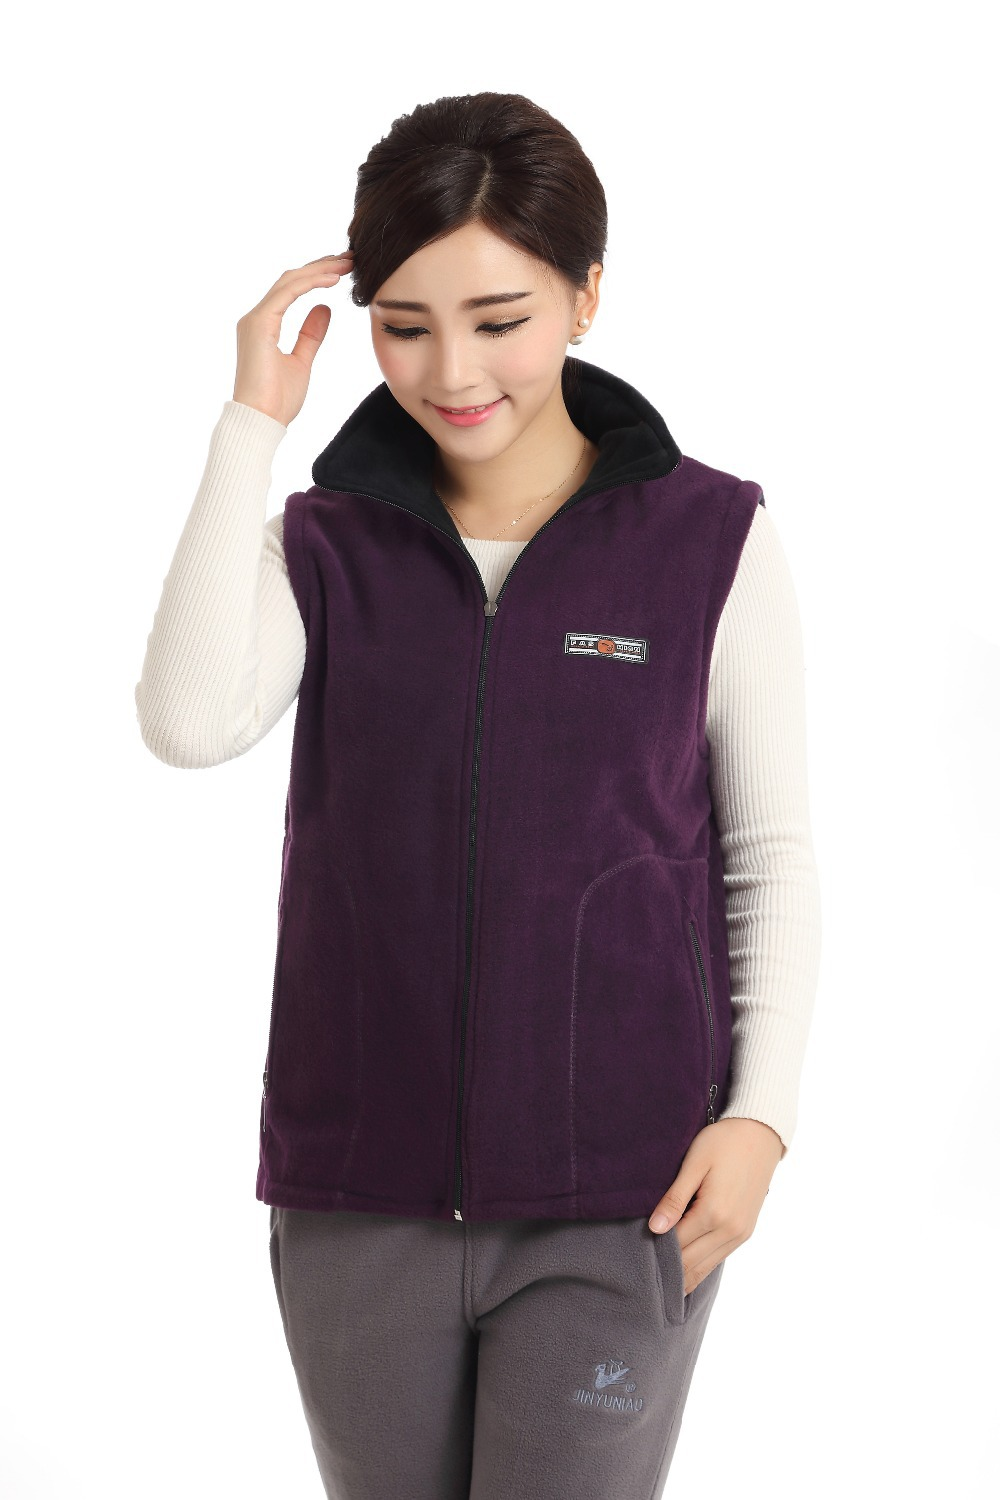 2015 Fall Winter Women Standard Fashion Cotton Vests Thin Zipper Turn-down Collar Coat Ladies Pockets Sleeveless Outwear D42a